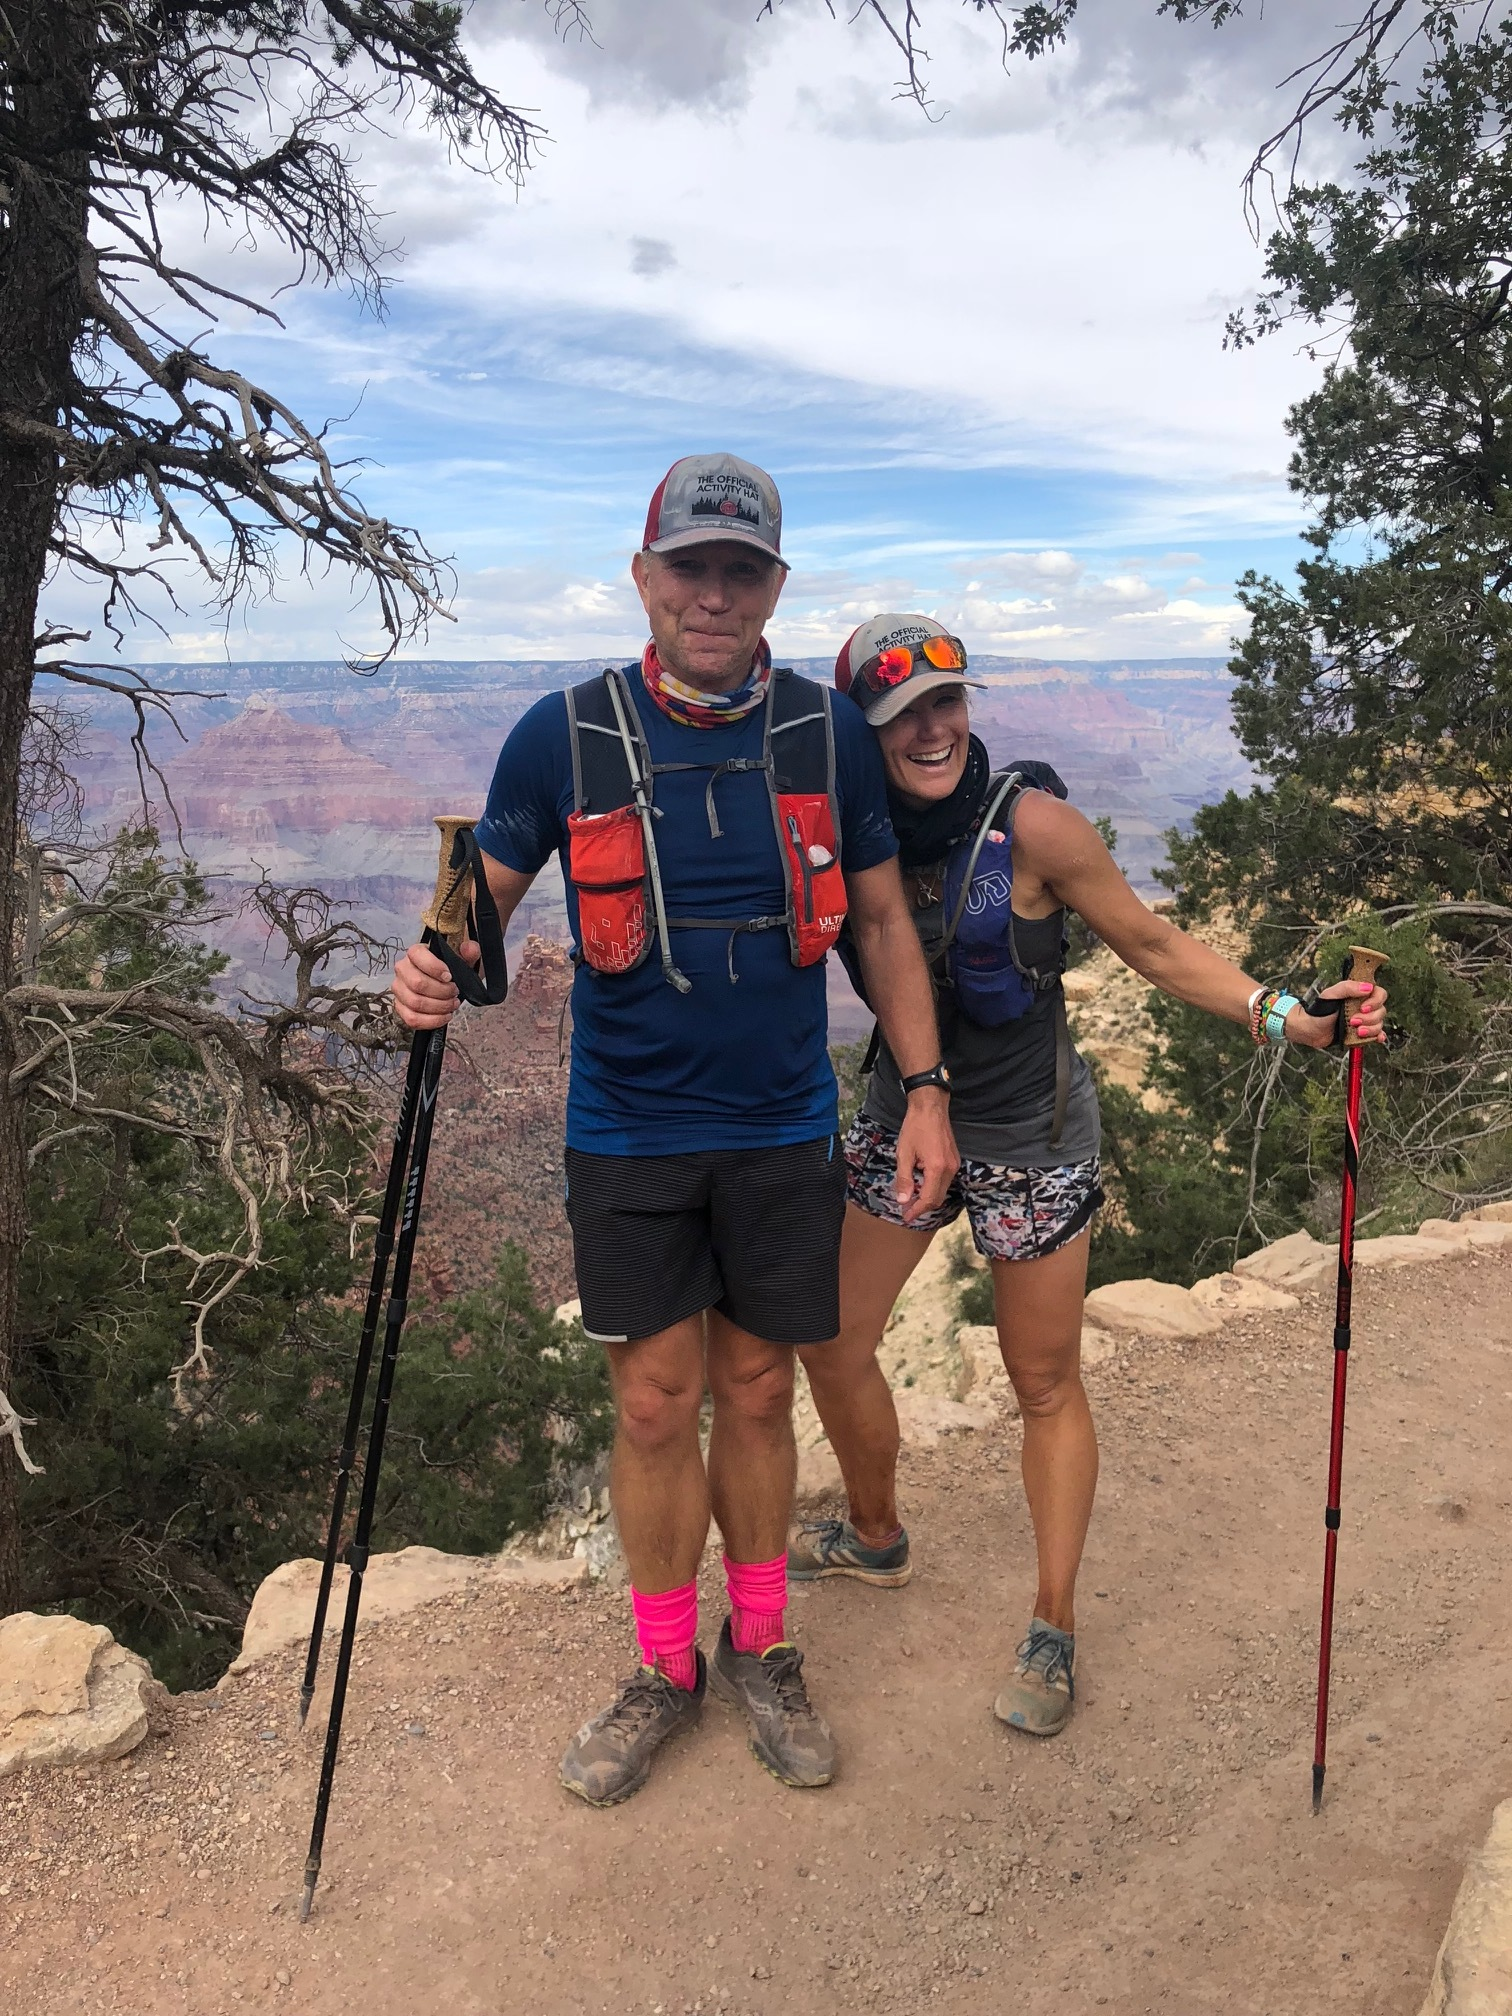 "- Mark and I are thrilled to be taking part in the Run2Revive Grand Canyon crossing for our 3rd time!Several of our friends lives have been impacted in the past year by ALS and Alzheimer's and it once again reminds us how important this cause is.Sarah, Shara and Elizabeth have elected to join us and run on behalf of their loved ones, some of who passed in 2018.Elise, number one daughter will also take on the challenge!Our plans are extra epic this year. If we reach our team fundraising goal, Mark and I plan to cross Rim2Rim2Rim in a single day! 2 back-to-back marathons, South Rim to North Rim and back again.We appreciate any support you can give.""I don't run to add days to my life, I run to add life to my days."""